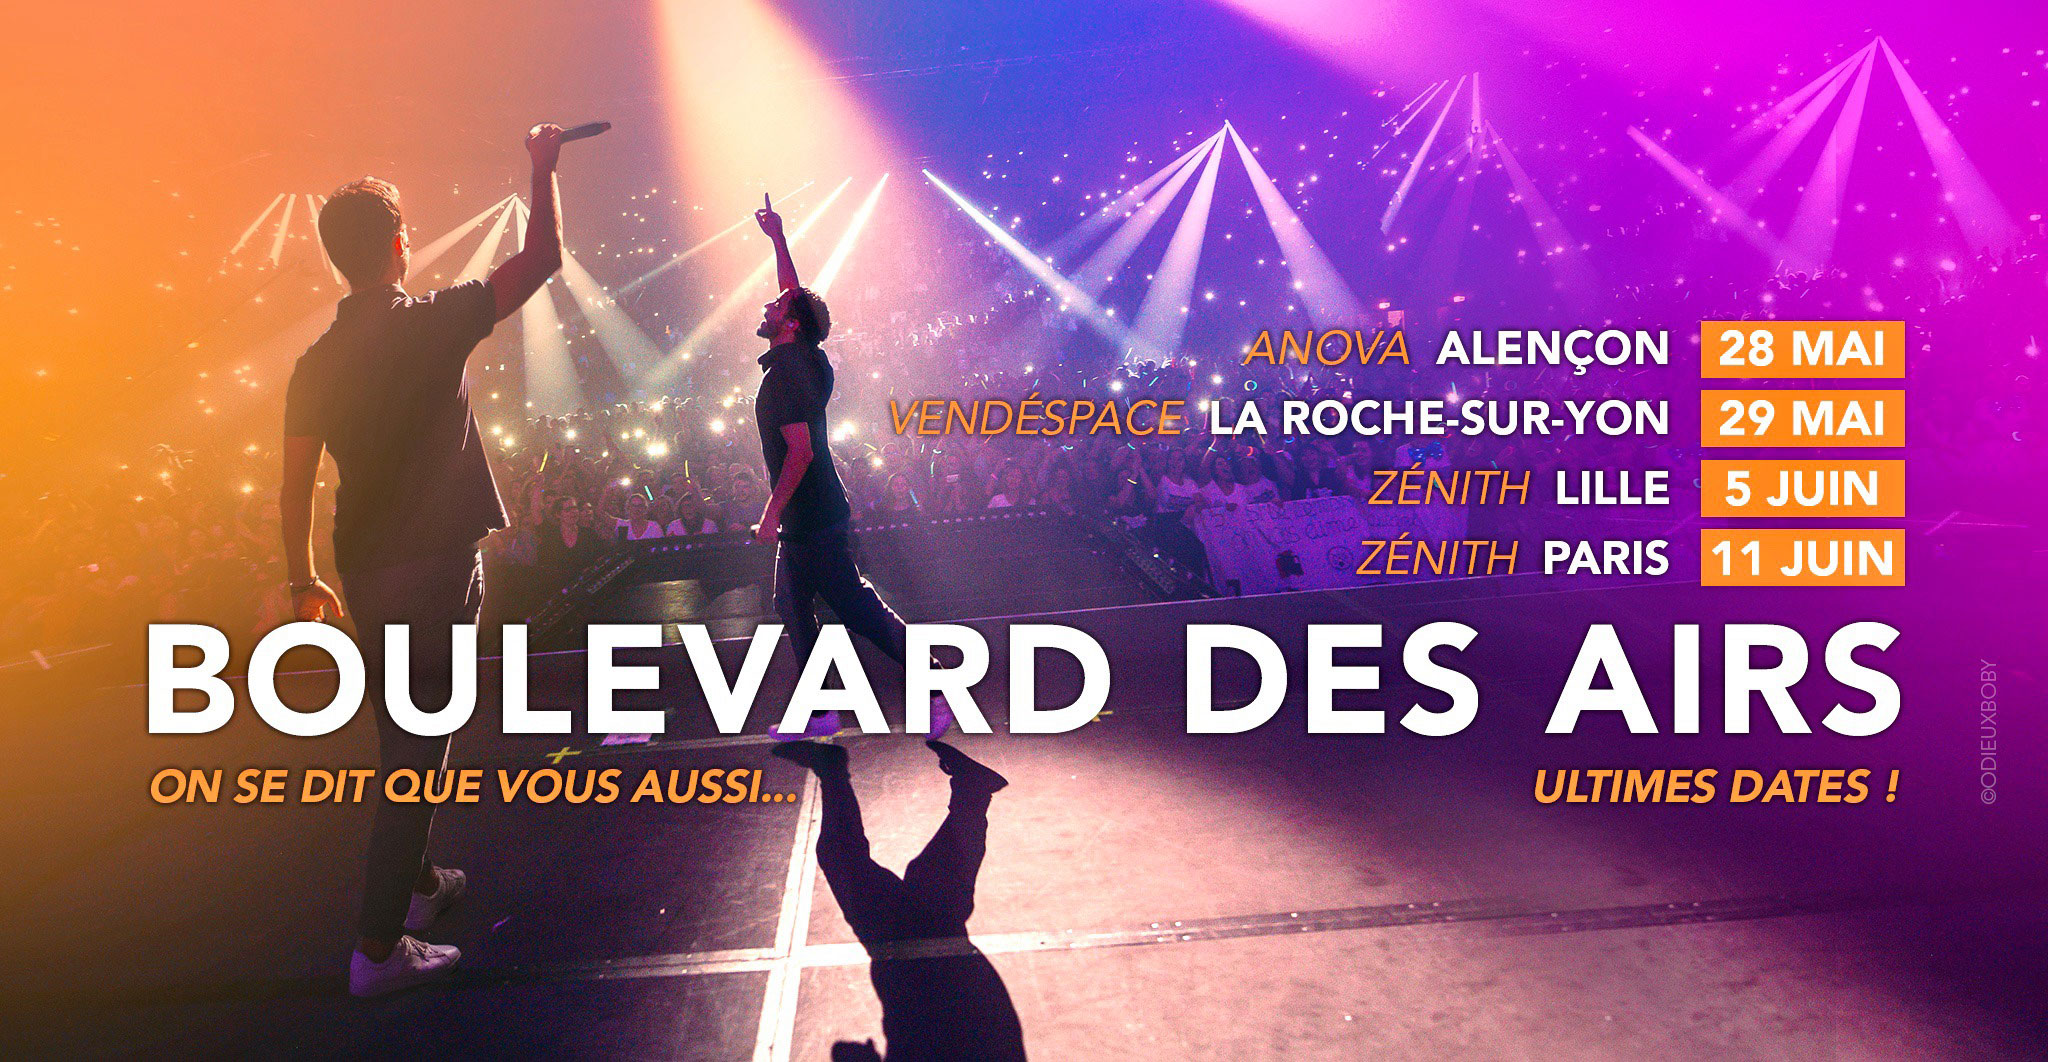 Ultimes dates 2021 Boulevard des Airs @OdieuxBoby